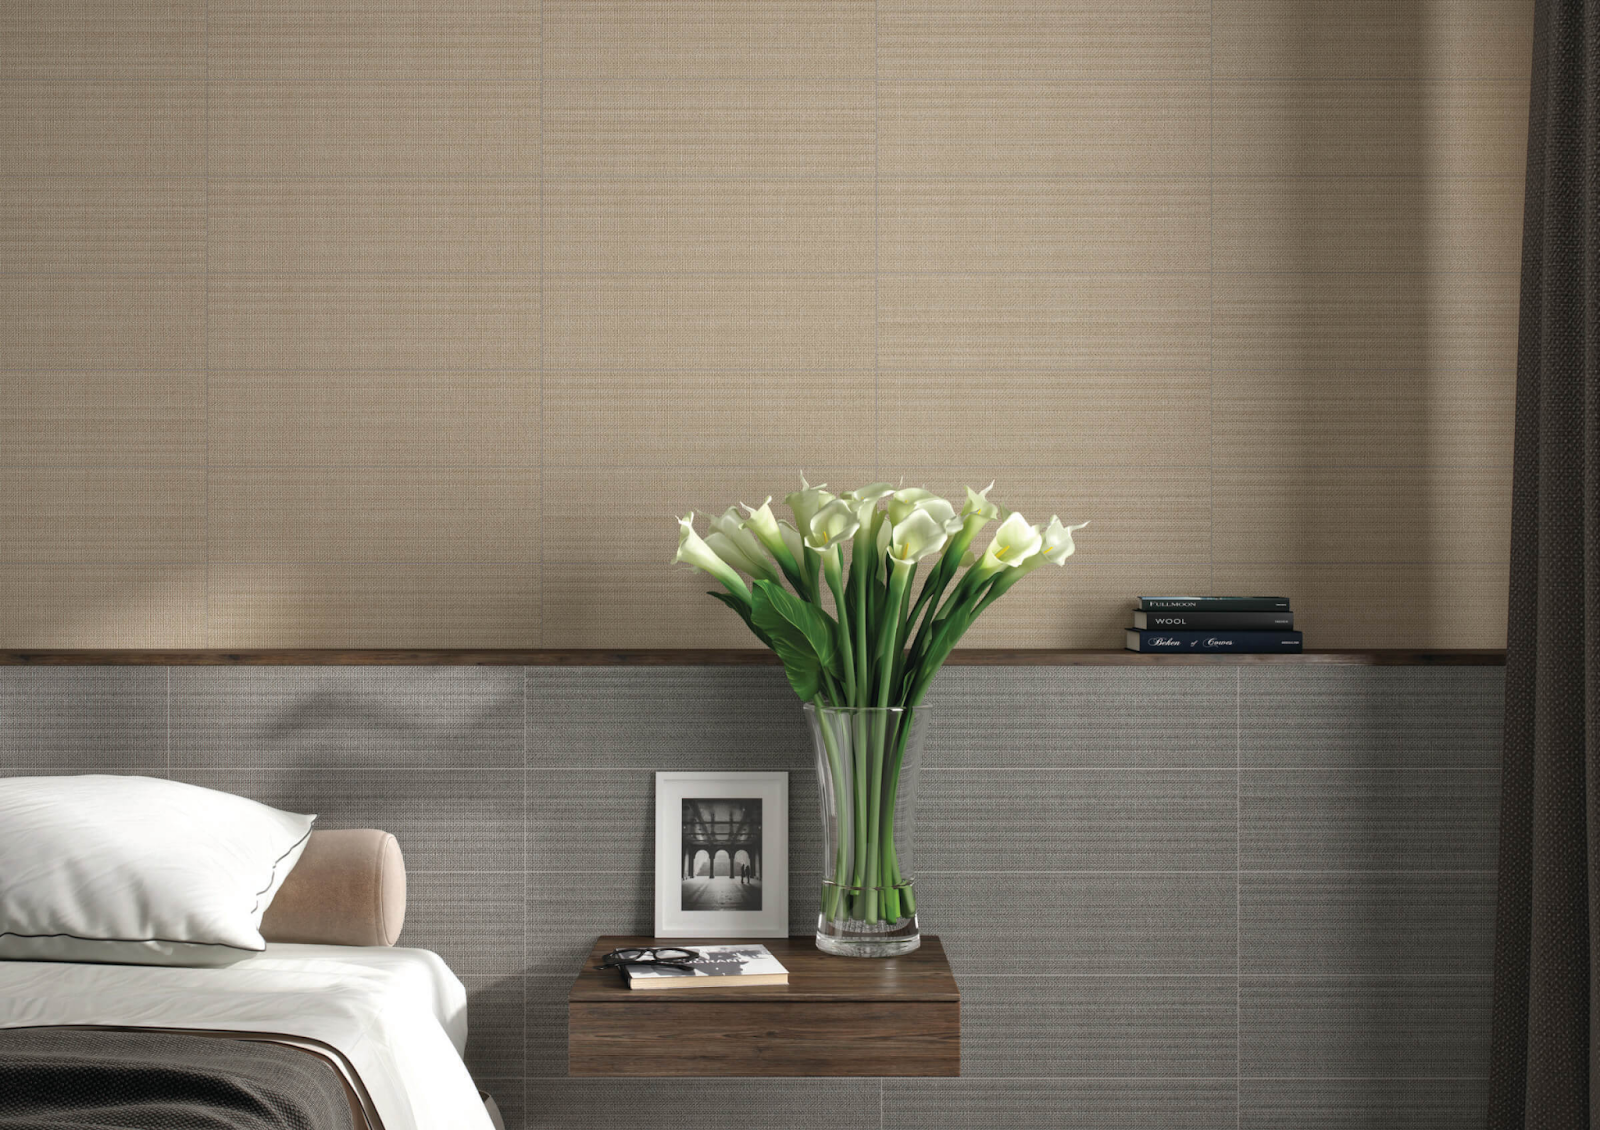 Bedroom with gray and beige textured tile wall